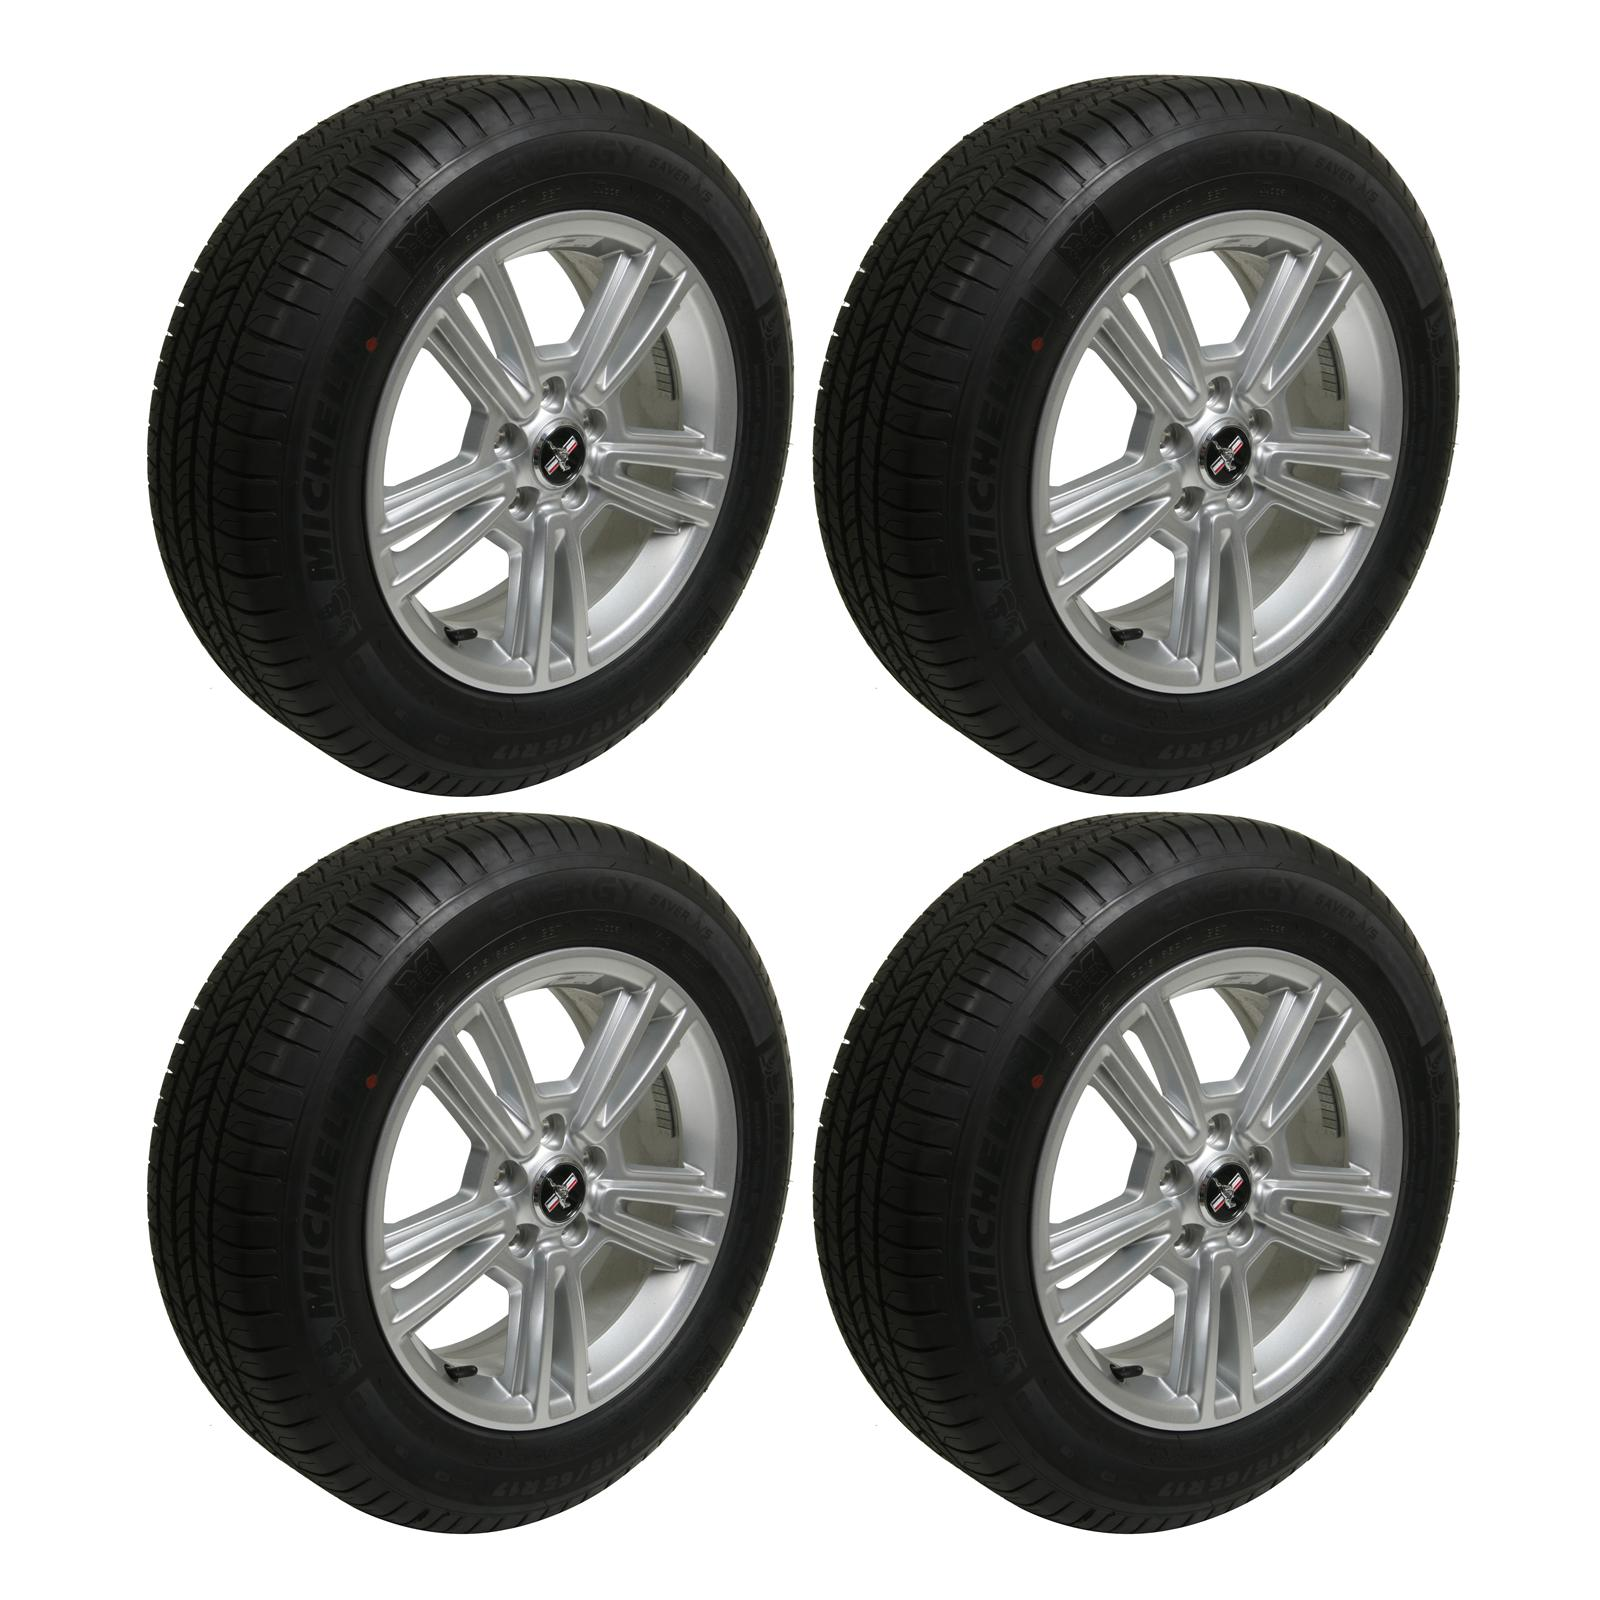 Ford Parts Wheels : Ford mustang wheel and tire packages free